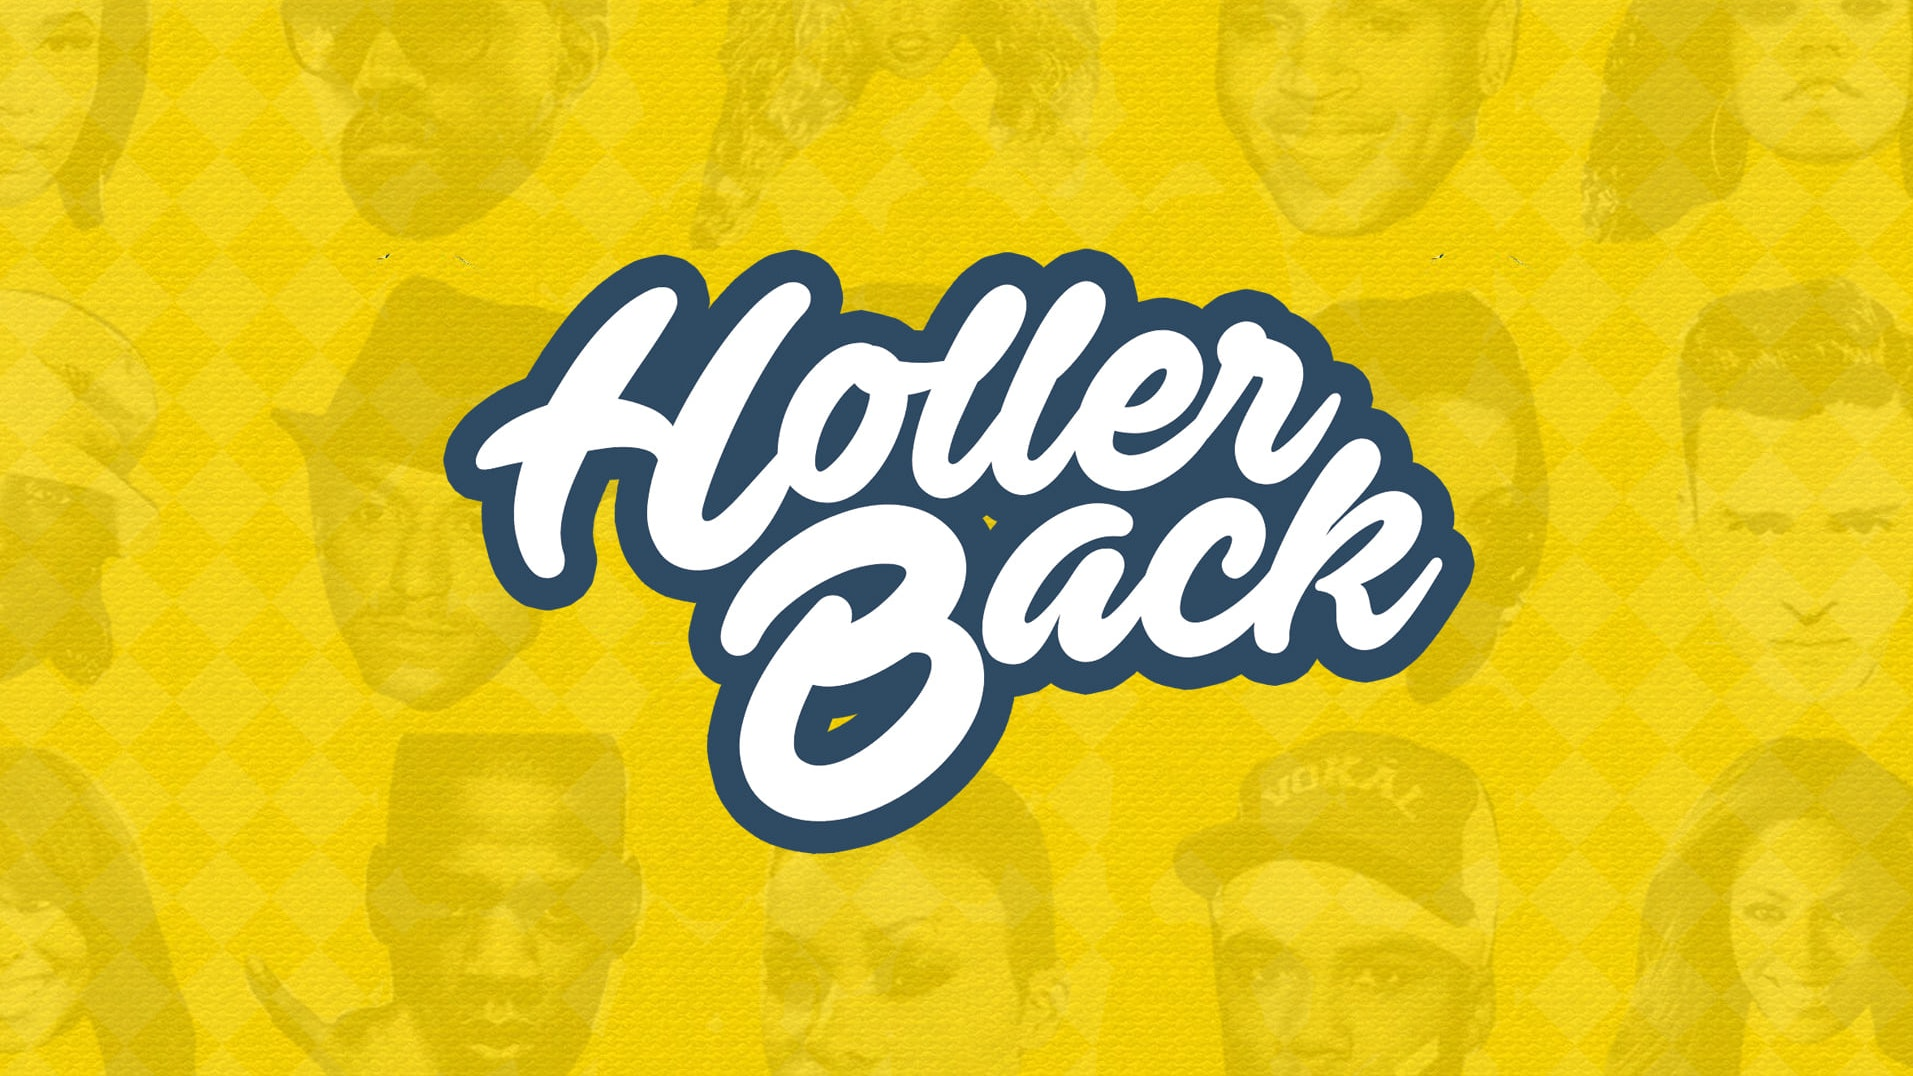 Holler Back – HipHop N' R&B  | London Freshers Launch